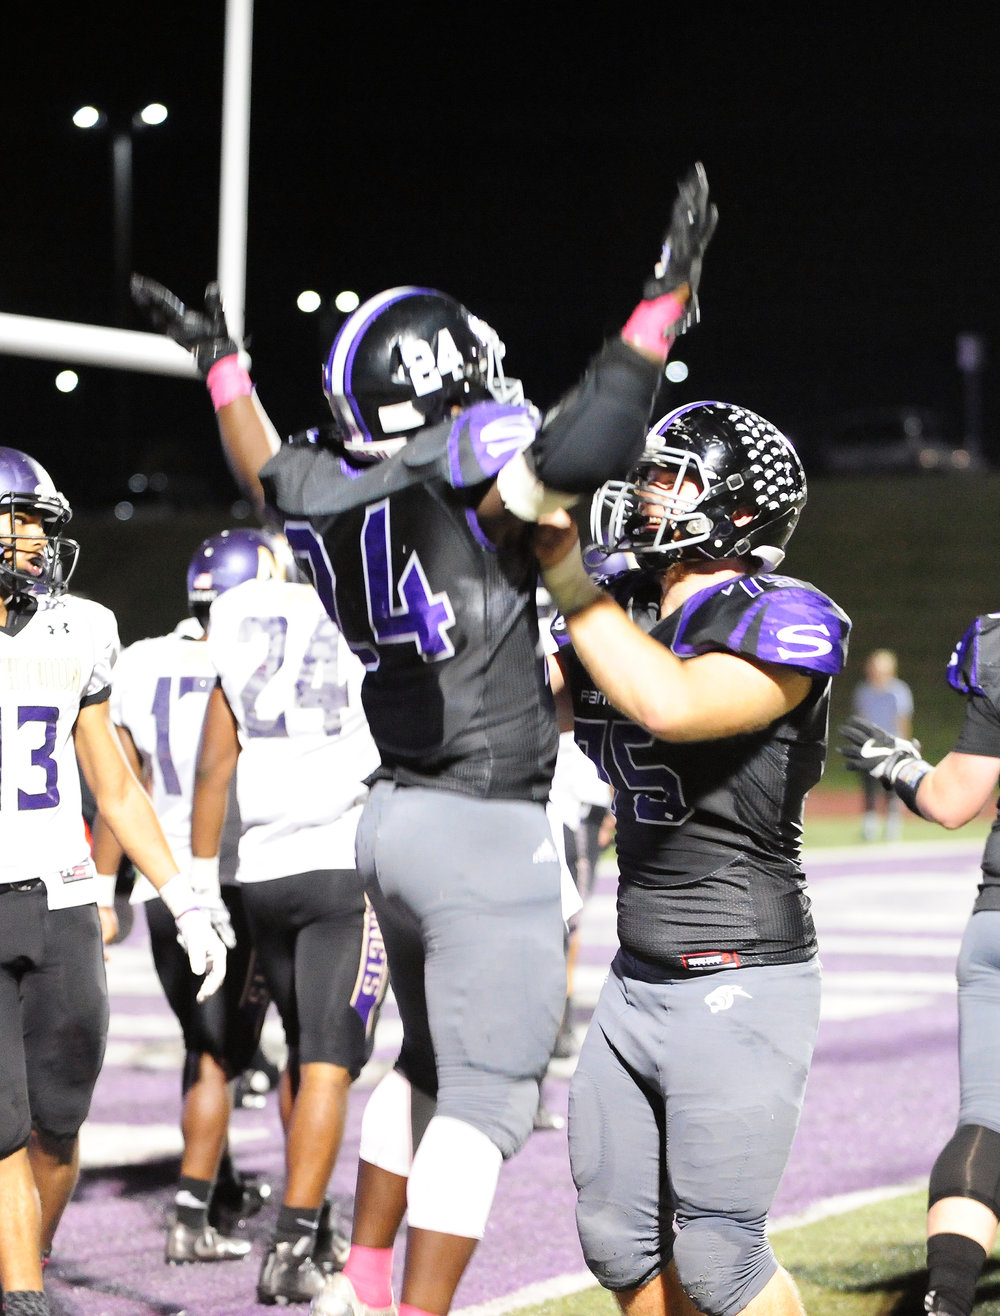 NICK INGRAM/Citizen photo Park Hill South senior running back Emanuel Butler (24) is lifted up by sophomore Christian Holferty after Butler scored a touchdown on Friday, Oct. 29 at Park Hill District Stadium in Kansas City, Mo.